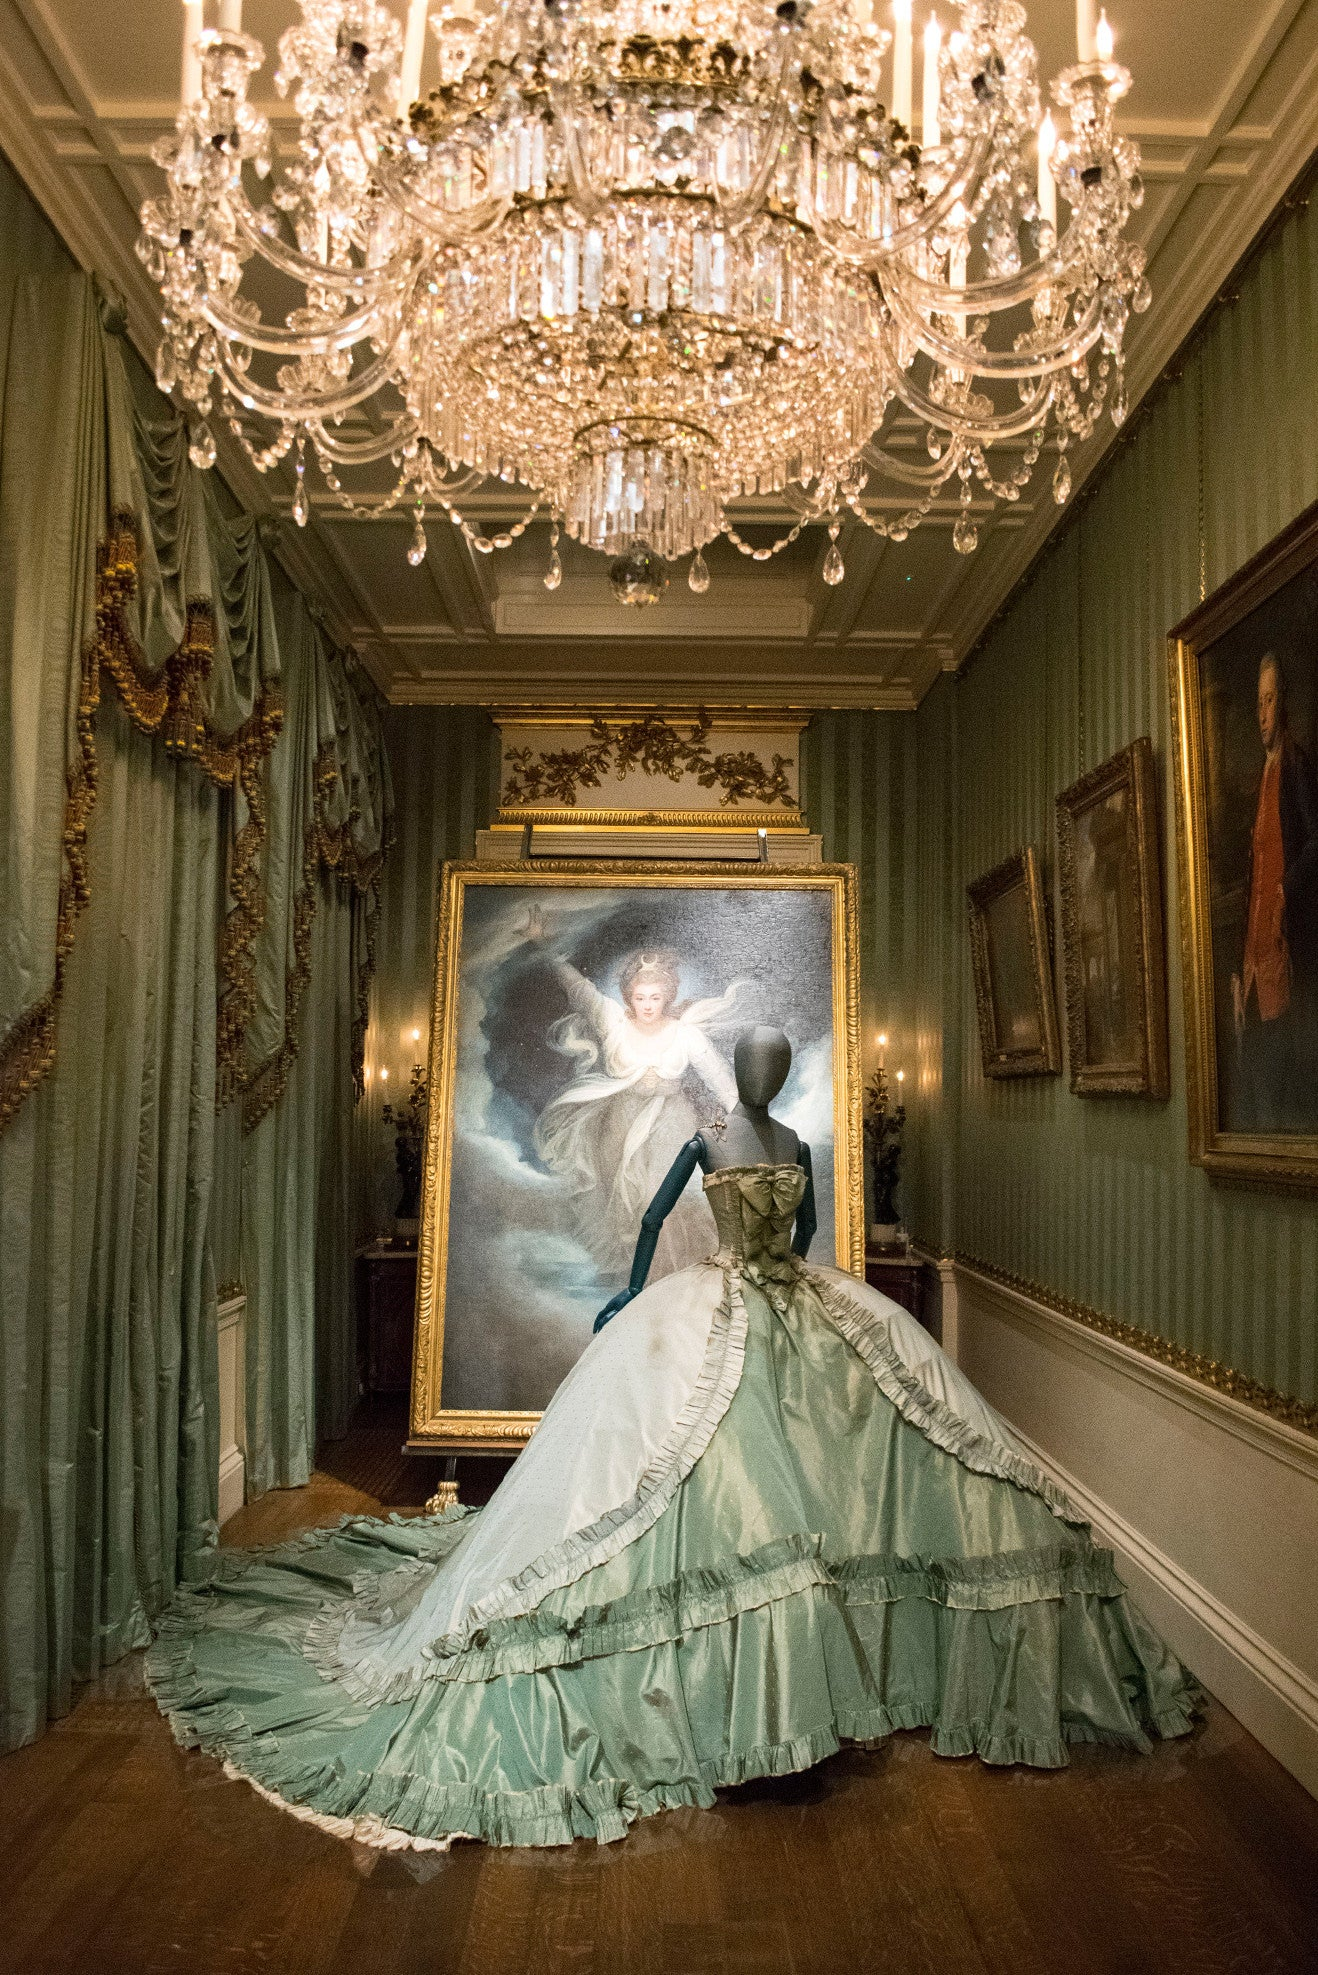 Chatsworth House Fashion Exhibition